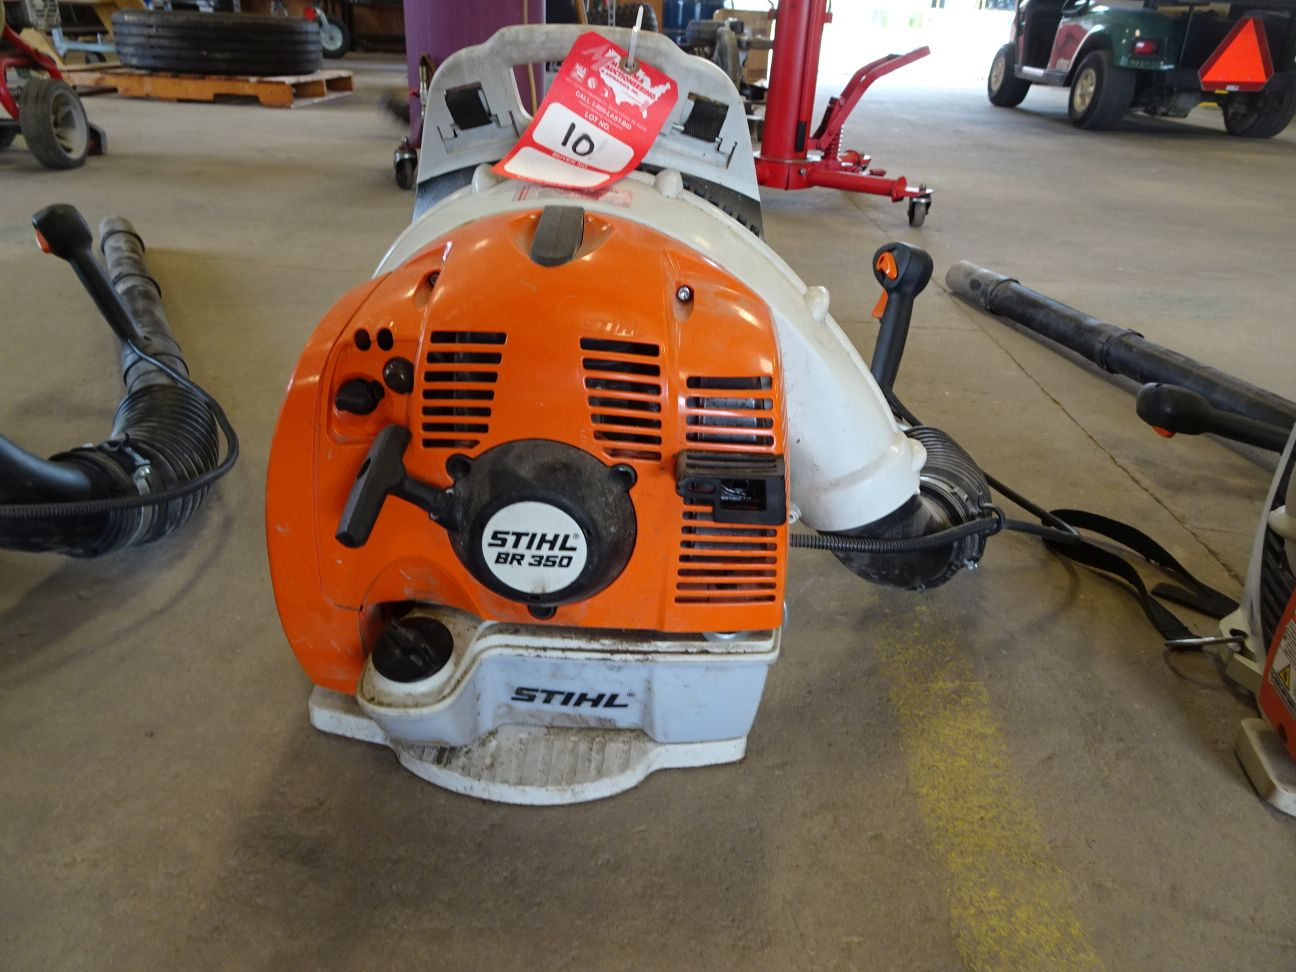 Lot 10 - STIHL BR350 GAS POWERED BACKPACK BLOWER (LOCATION: SHOP)